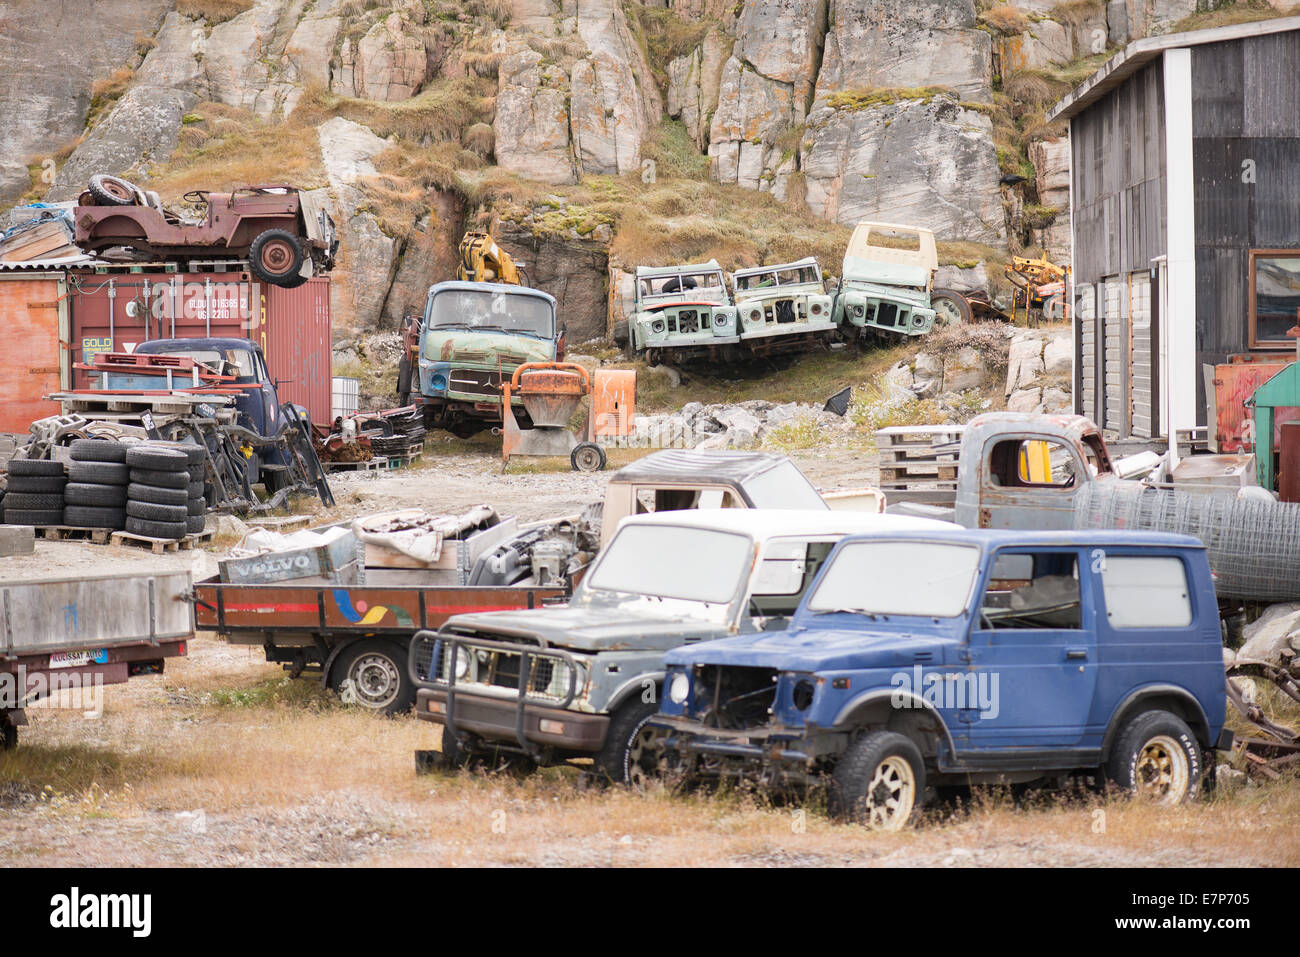 Discarded Cars Stock Photos & Discarded Cars Stock Images - Alamy